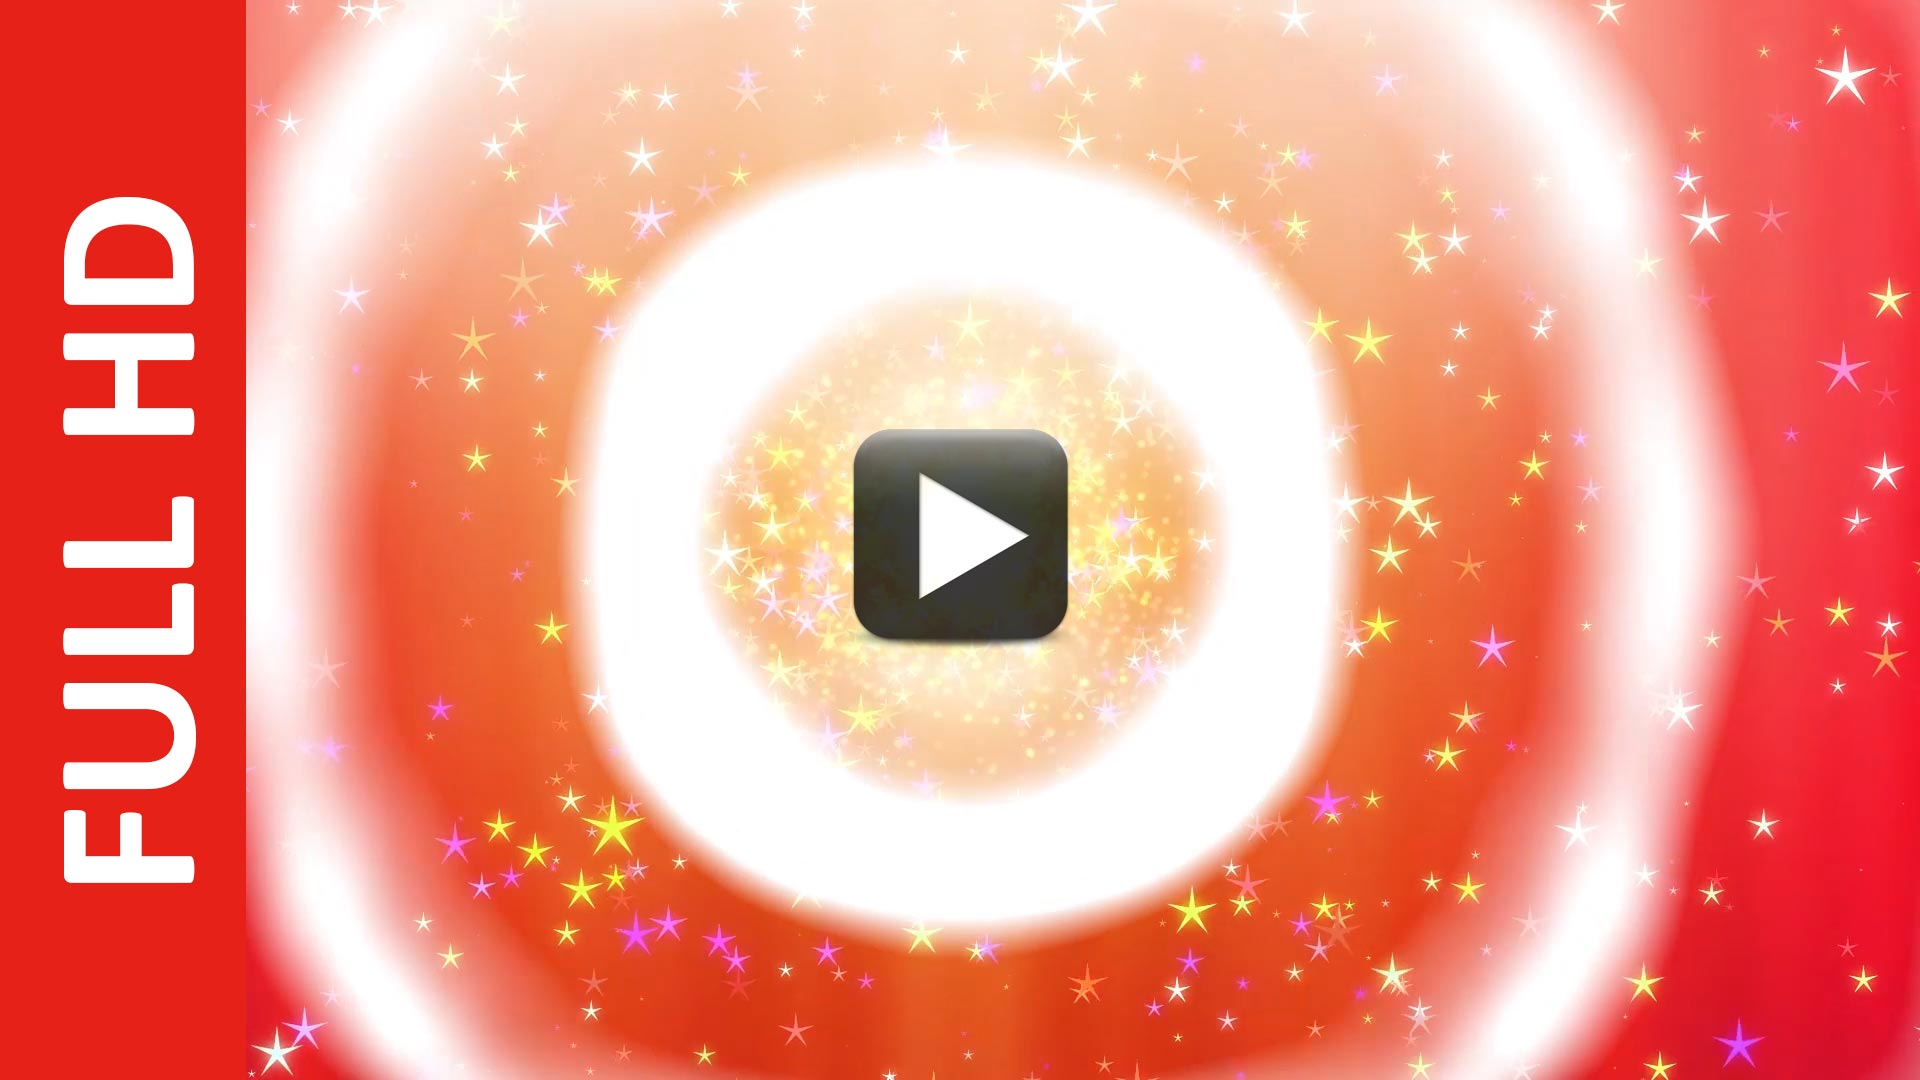 Intro Title Wedding Background Hd Video Cyclic Animated Effect All